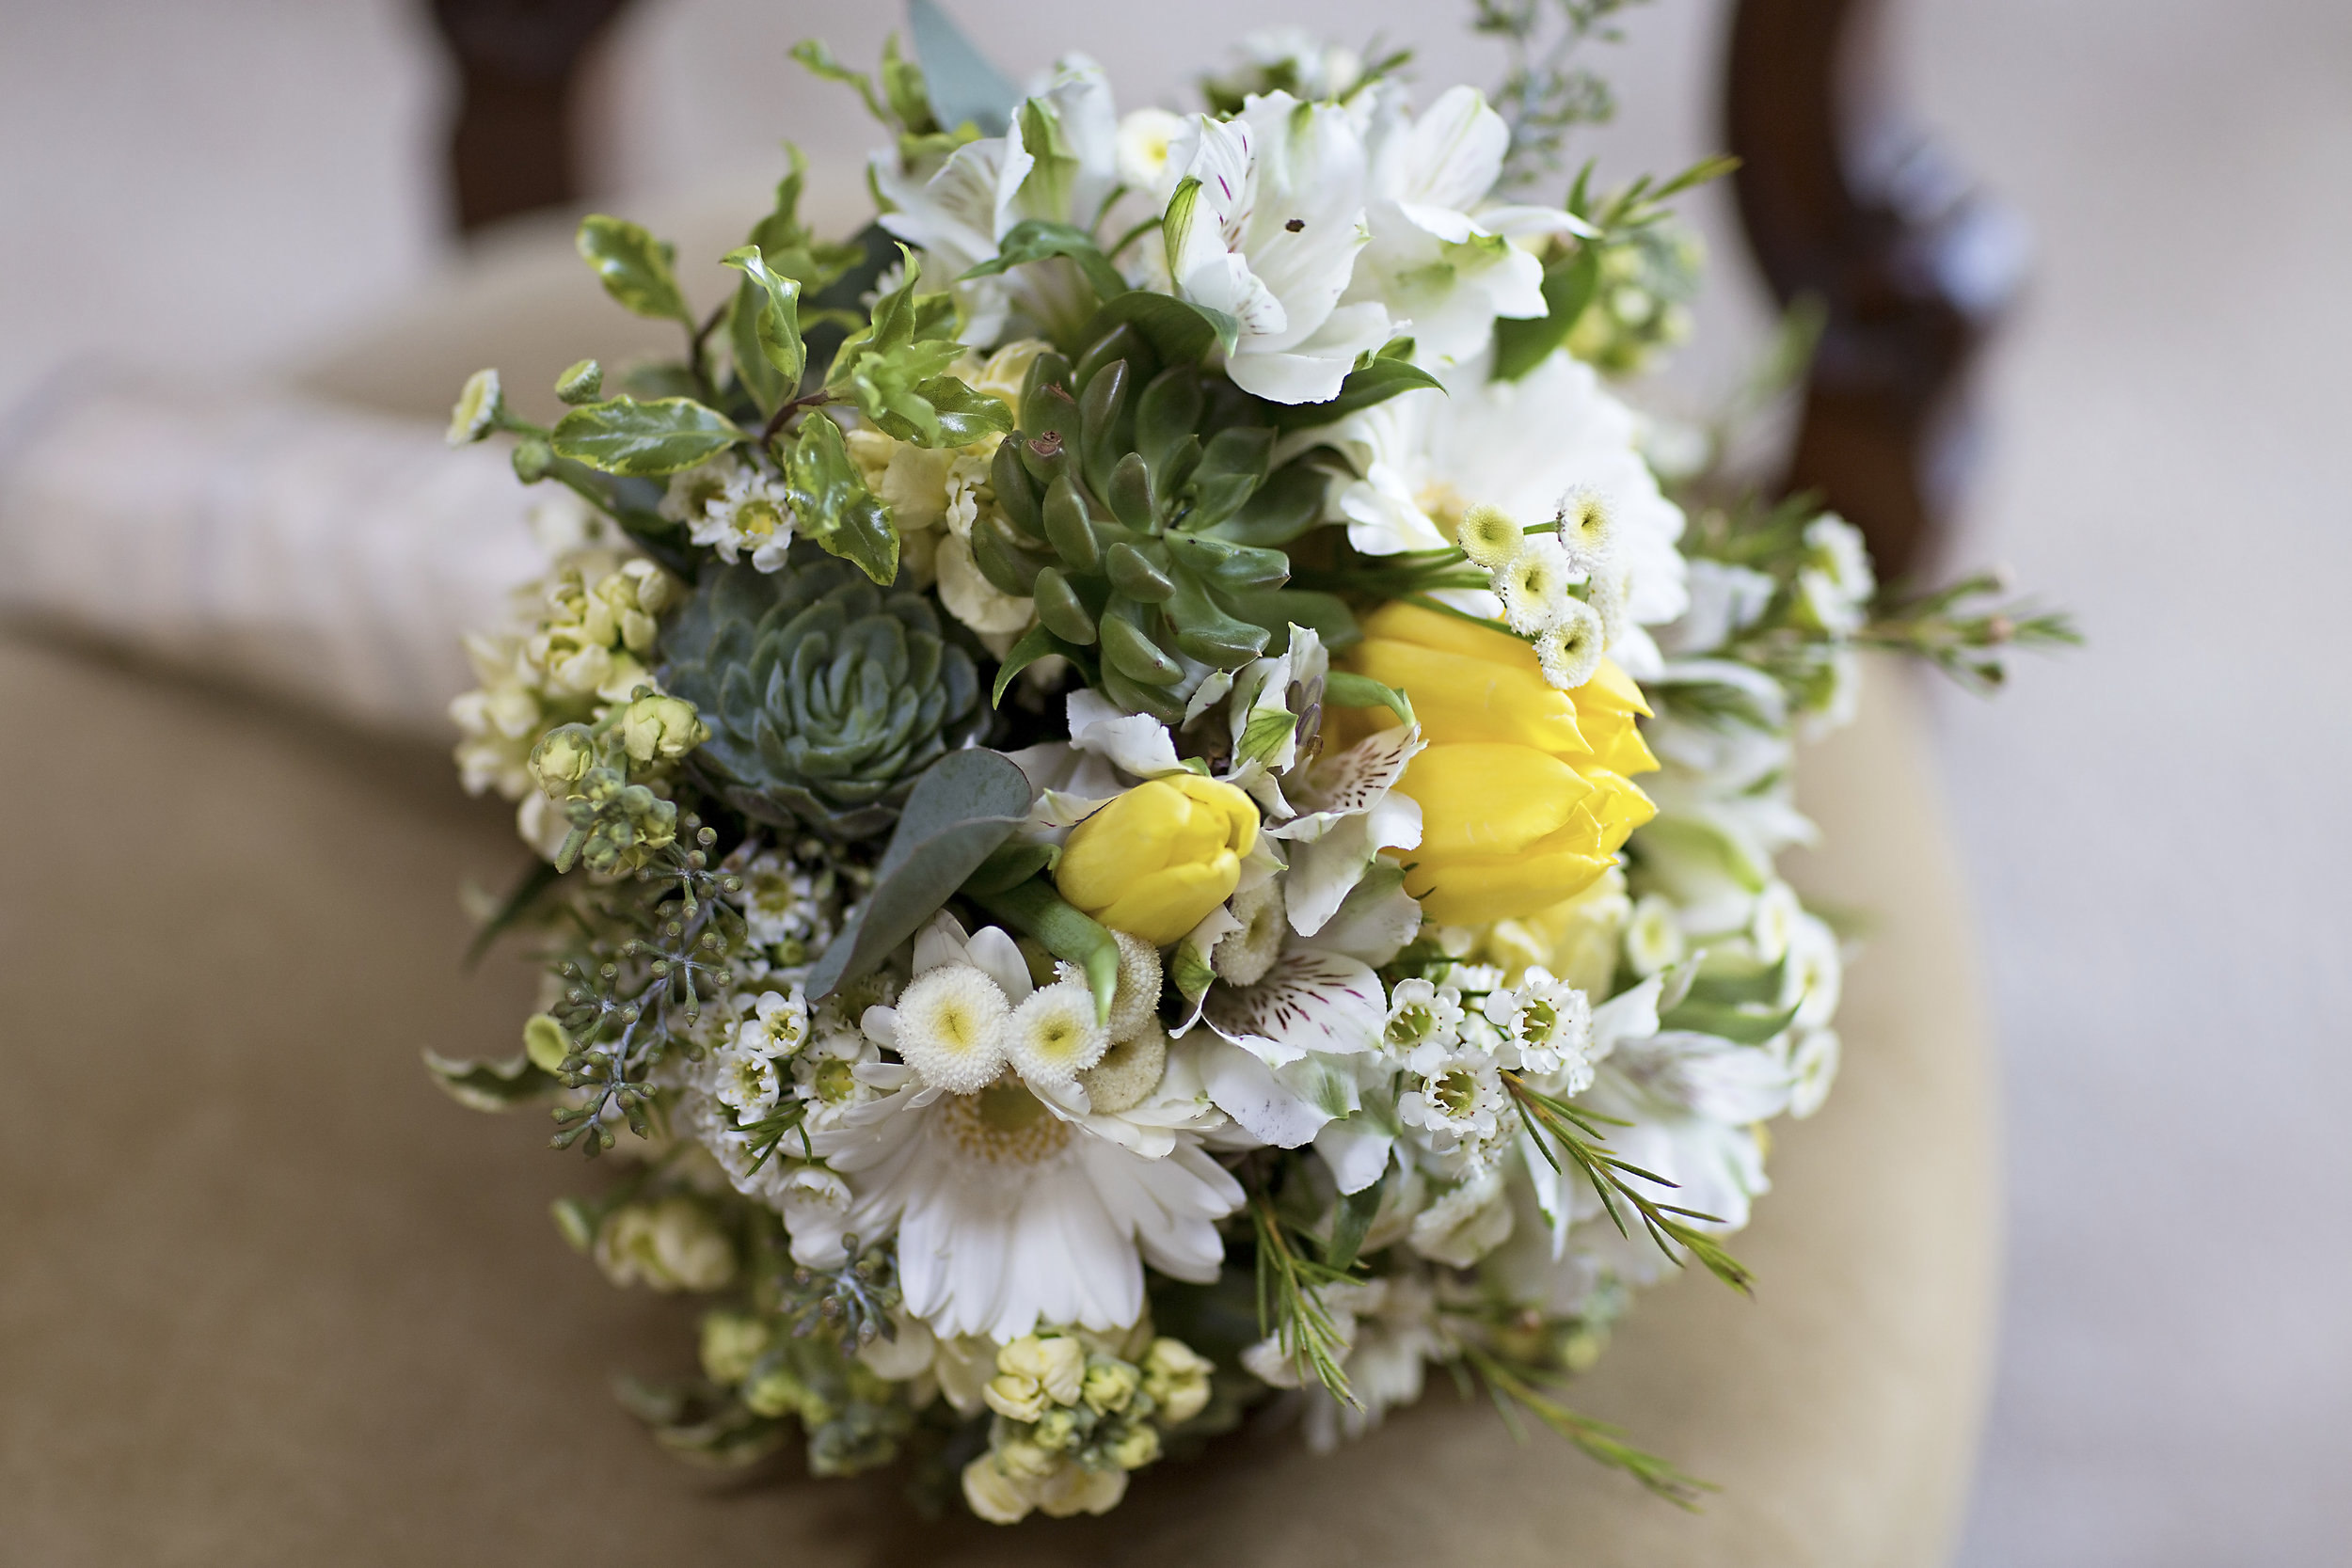 Succulent & gerbera daisy bouquet with yellow tulips, billy balls & eucalyptus. Rose of Sharon Floral Designs